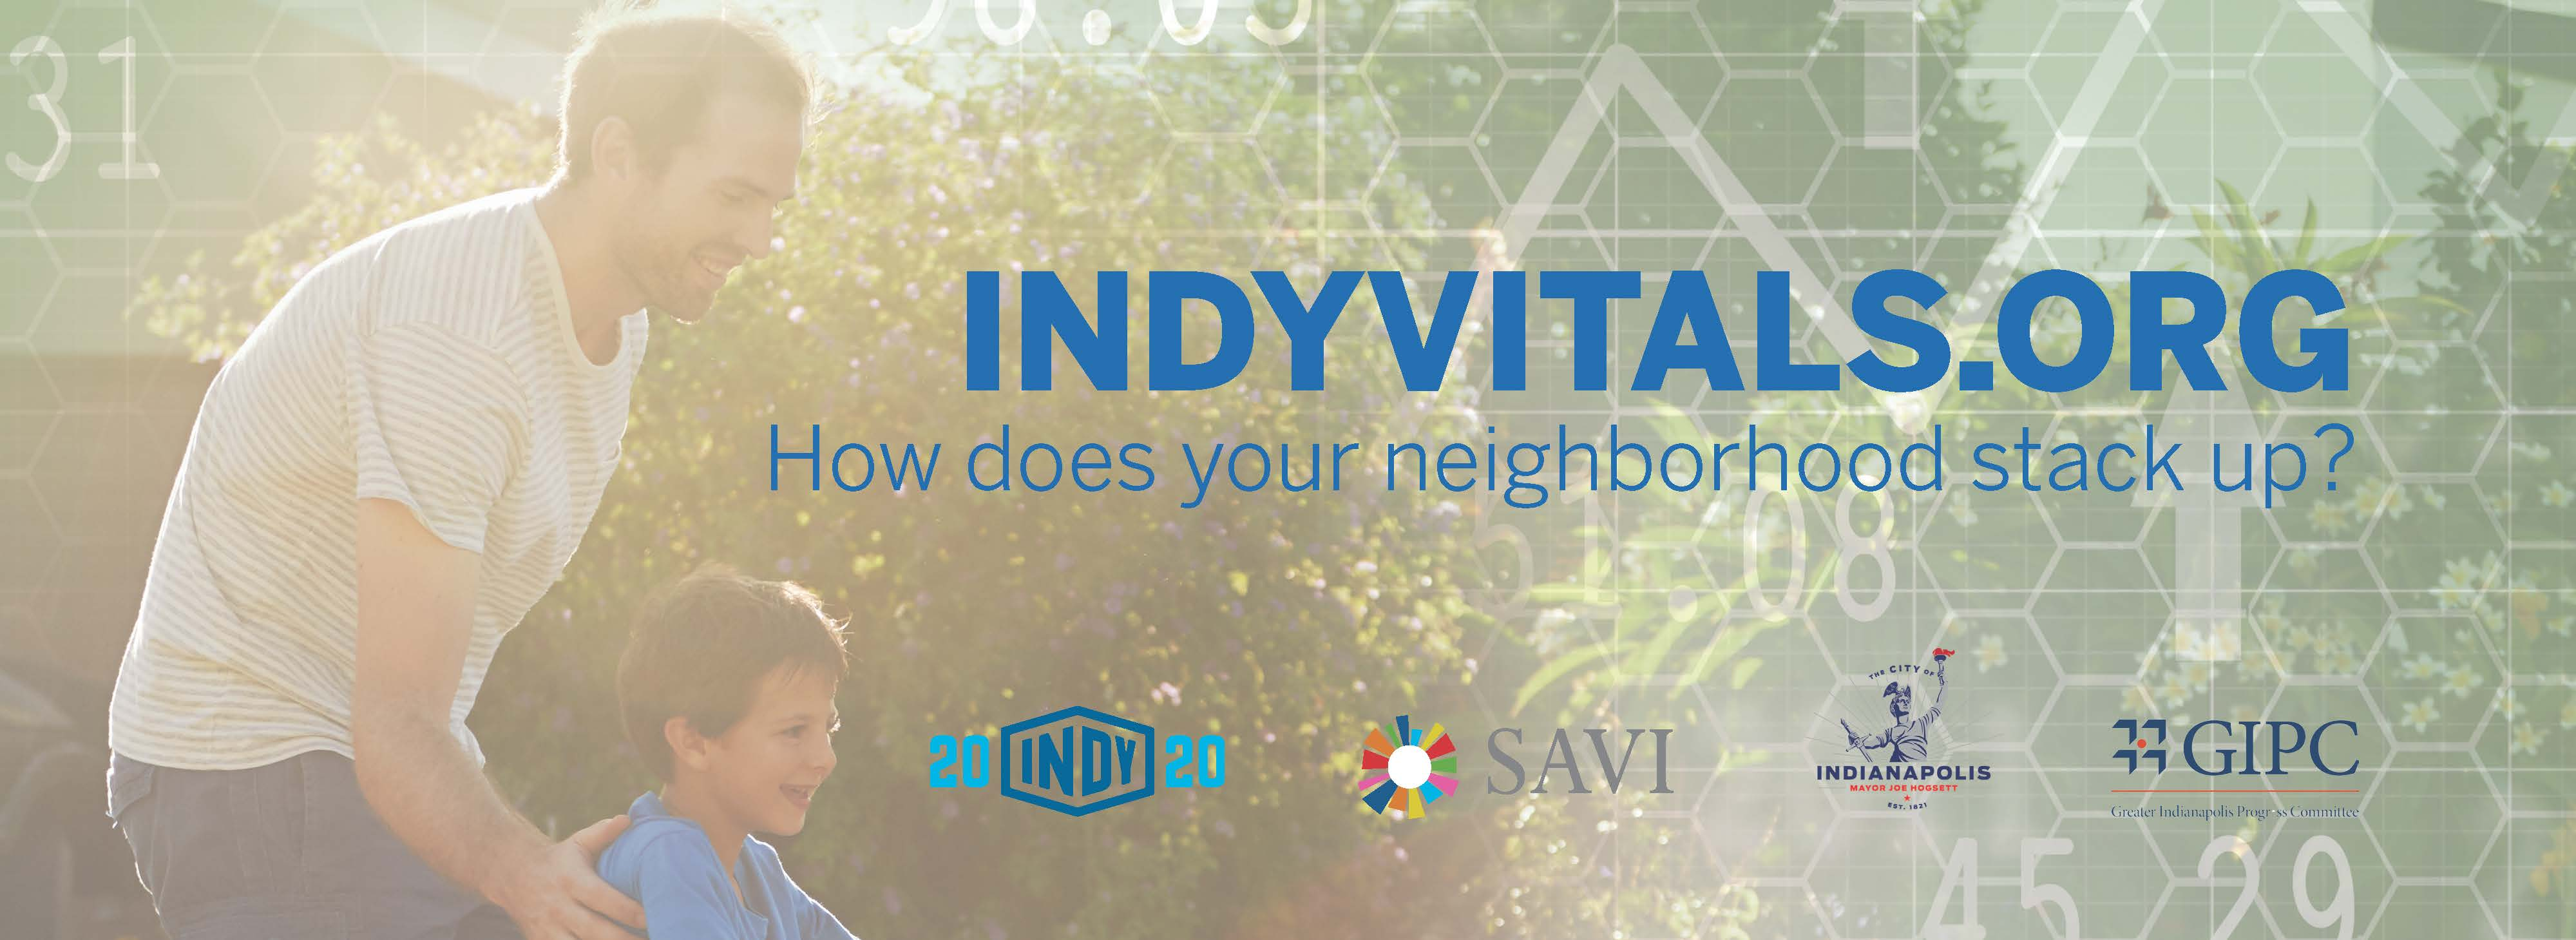 indyvitals-website-slider-banner-2